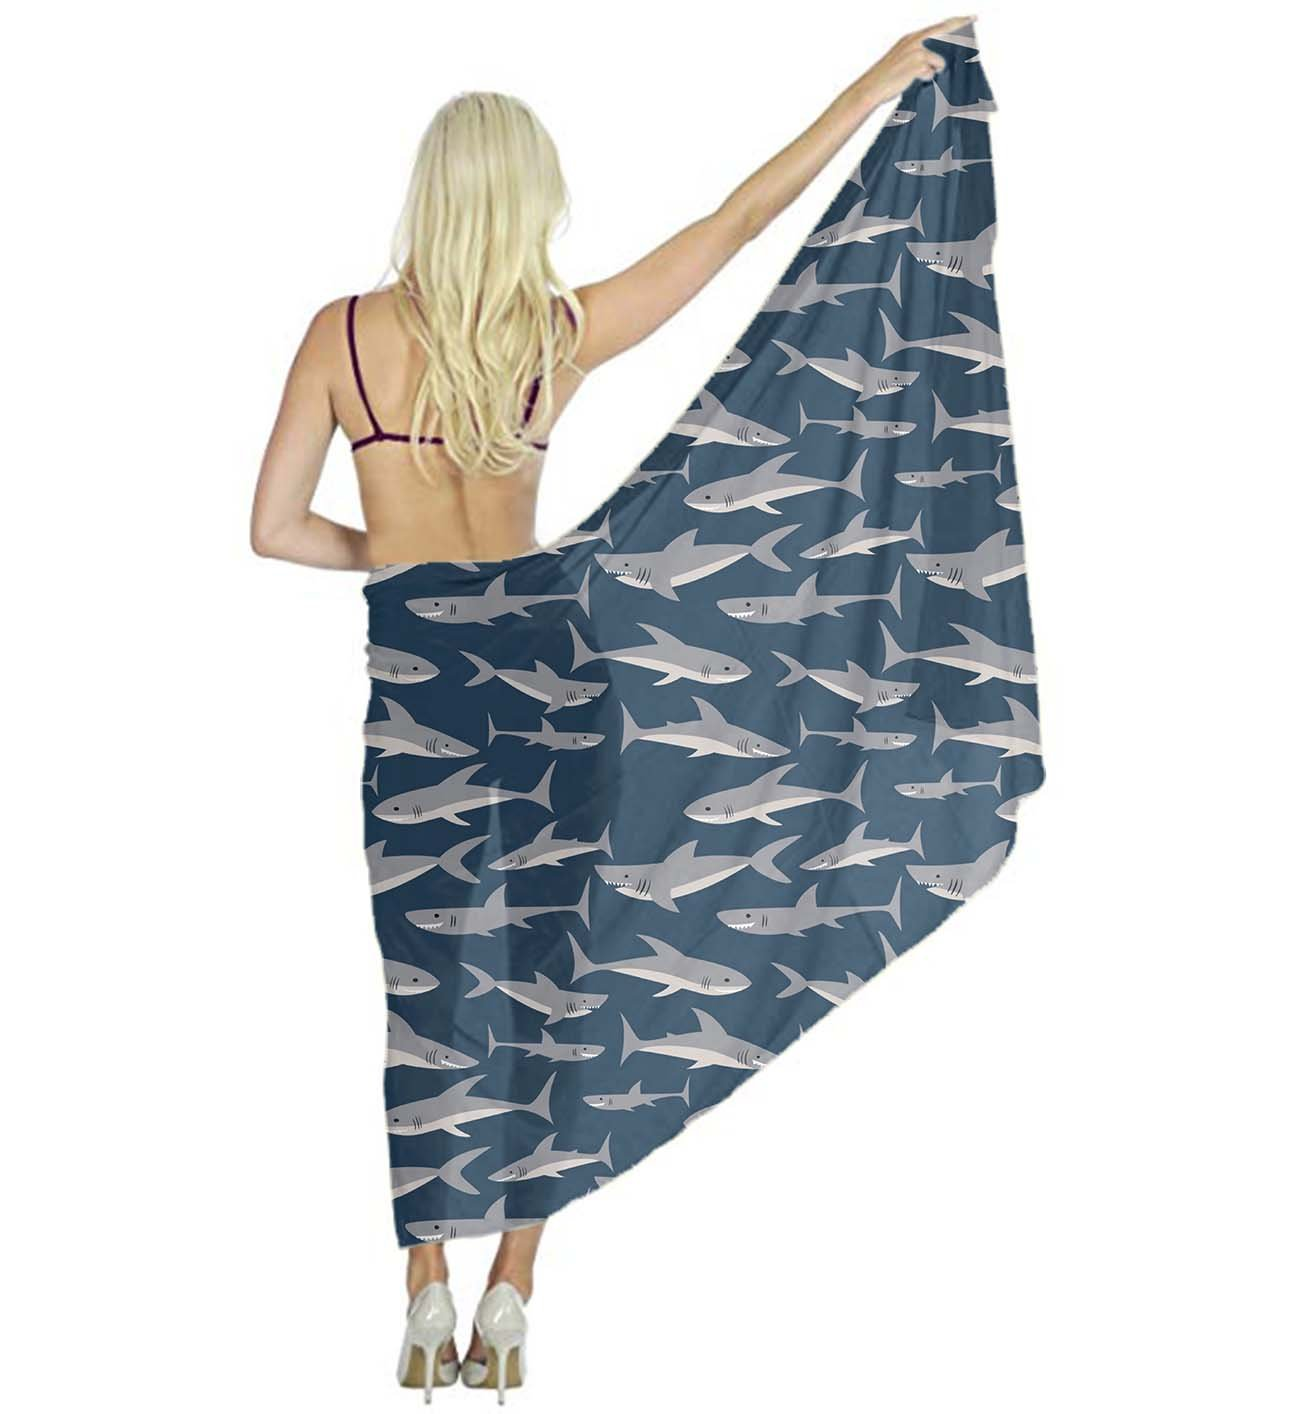 AMERICAN TANG Swimwear Chiffon Printed Cover up Beach Sarong Wrap - Cute Shark Print Eco-friendly Silk Scarf - Bikini Swimsuit Wrap Pareo Dress - Perfect gift for woman